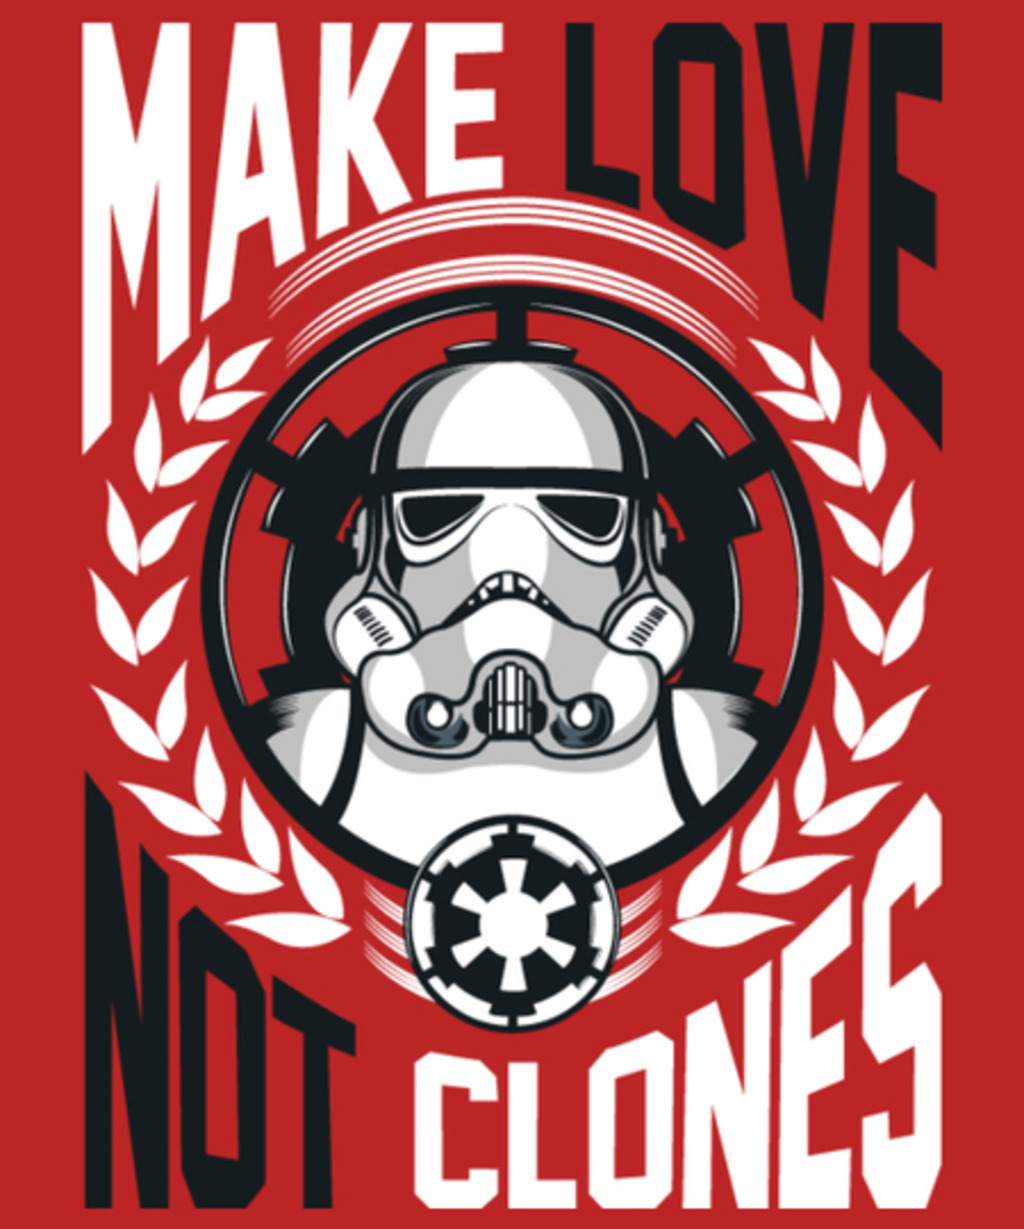 Qwertee: Make love not clones